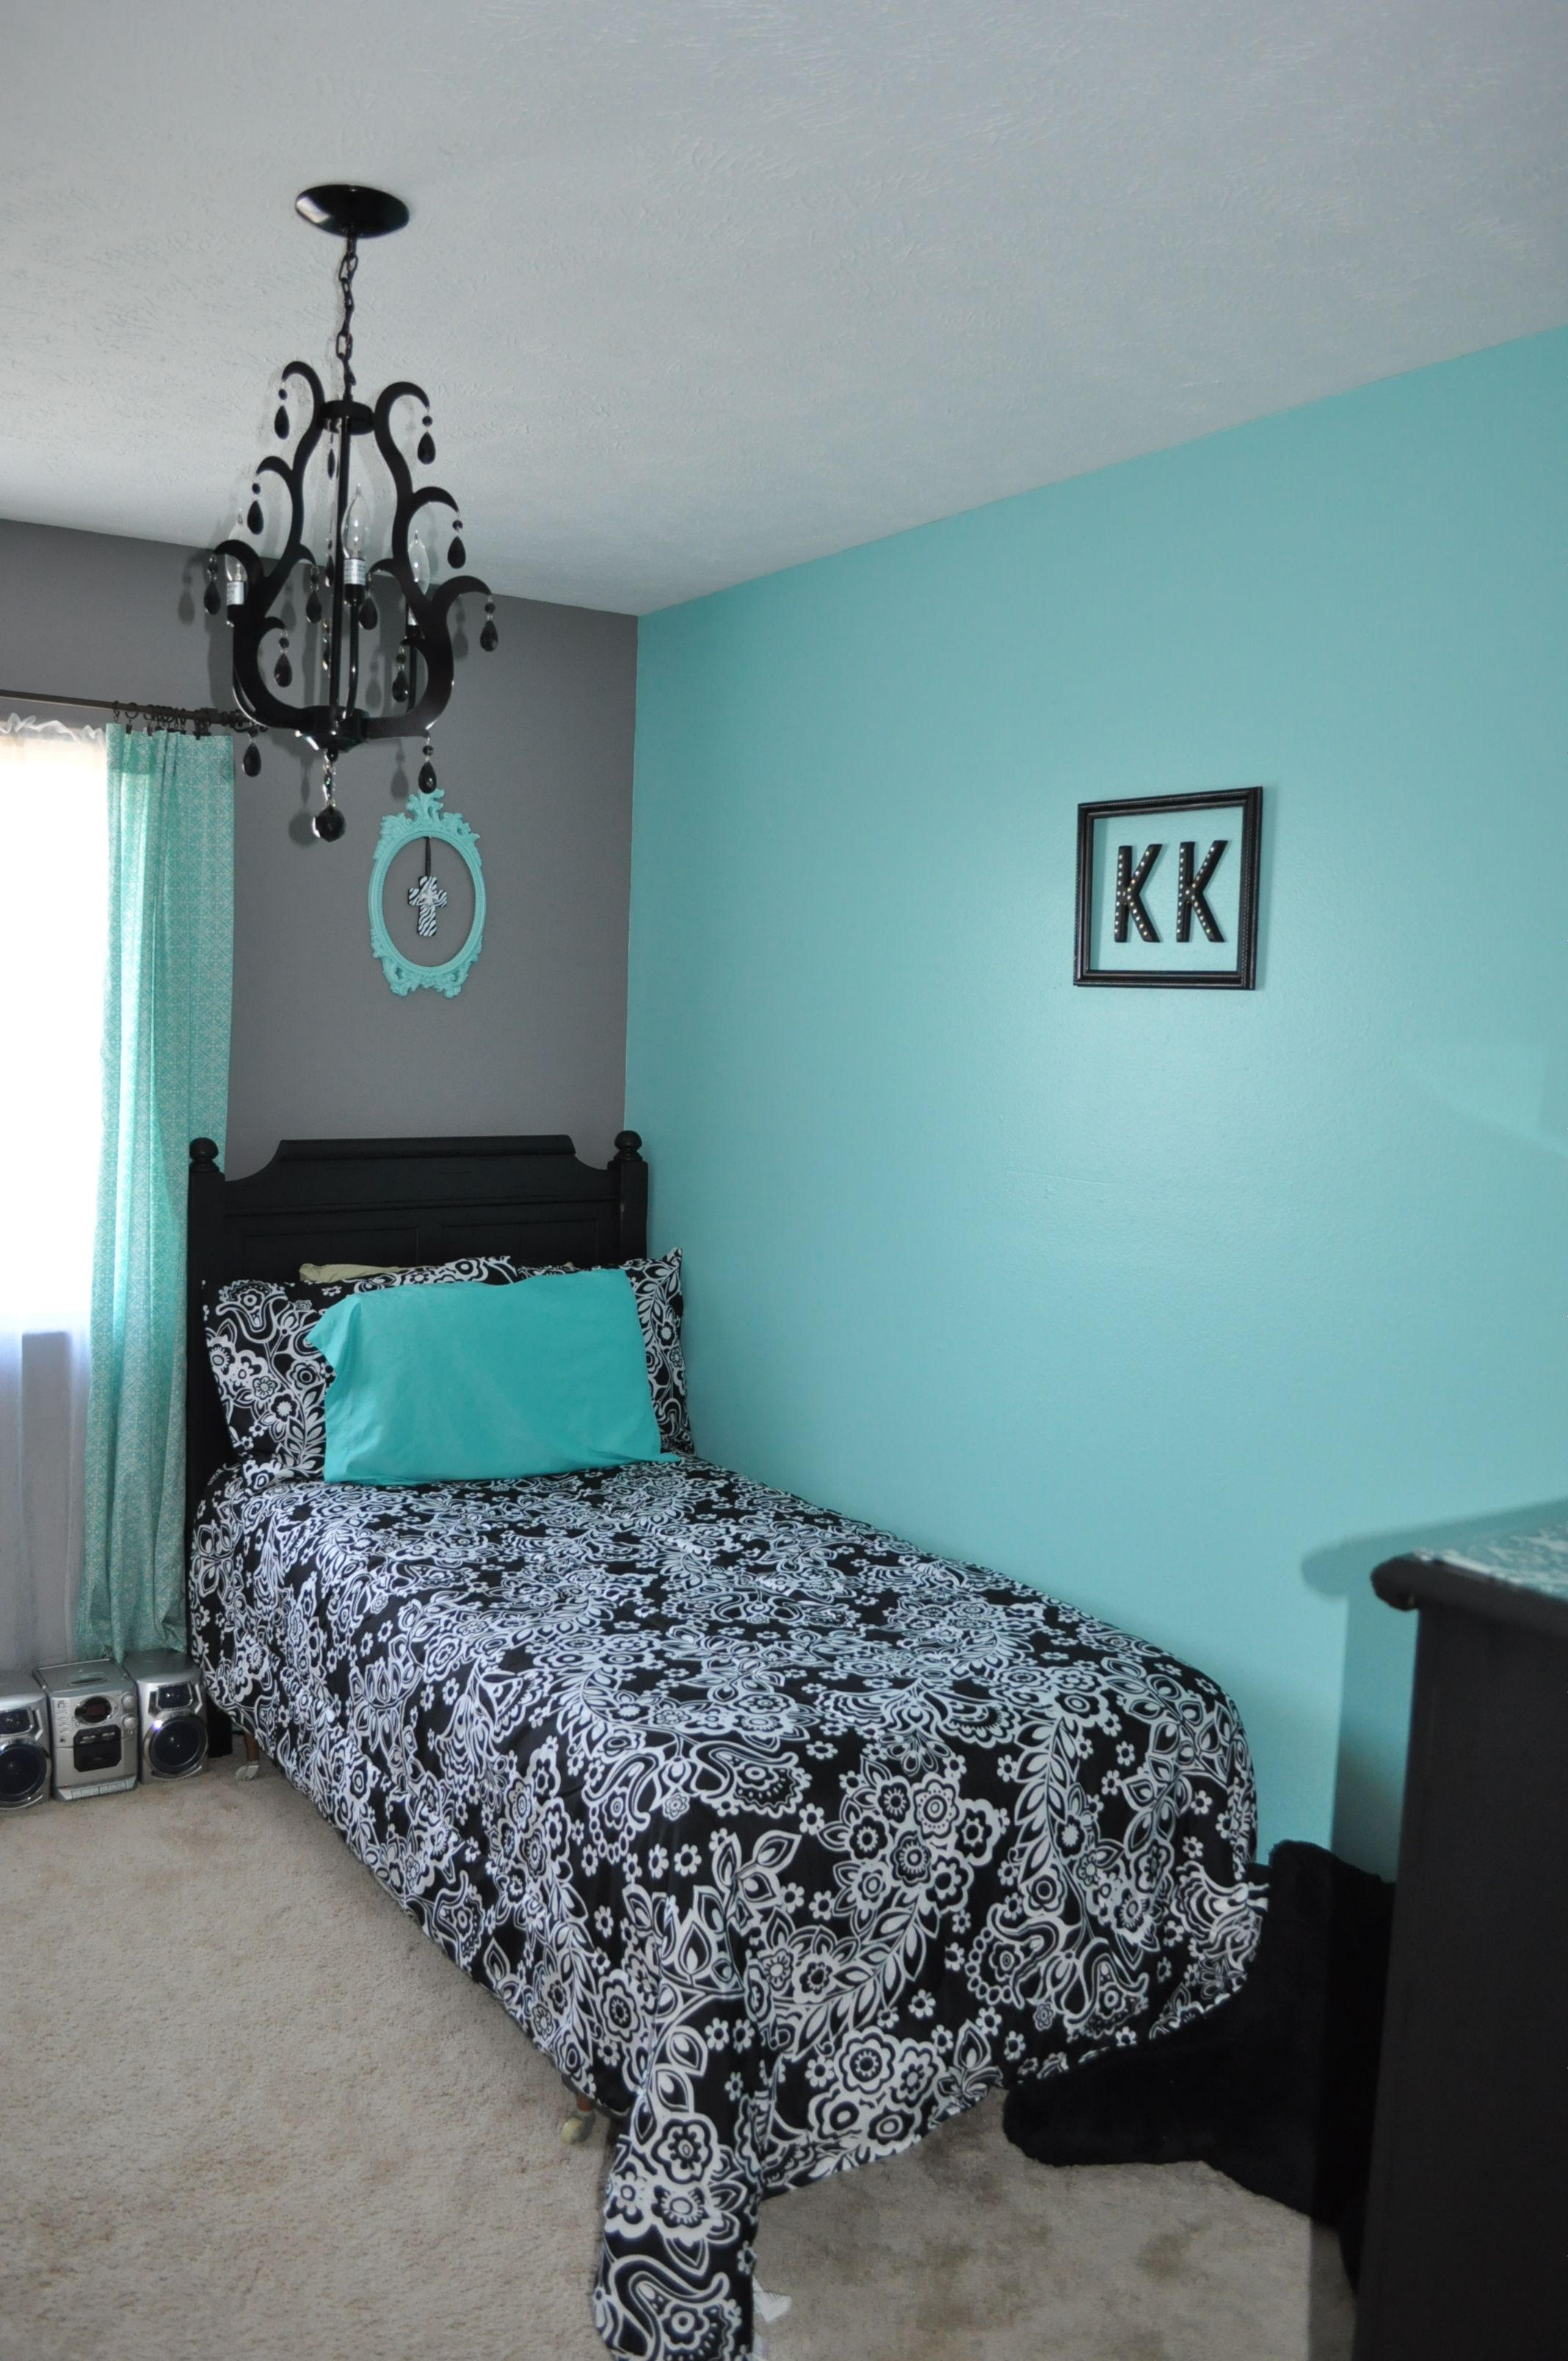 25 Turquoise Room Decorations – Aqua Exoticness Ideas and